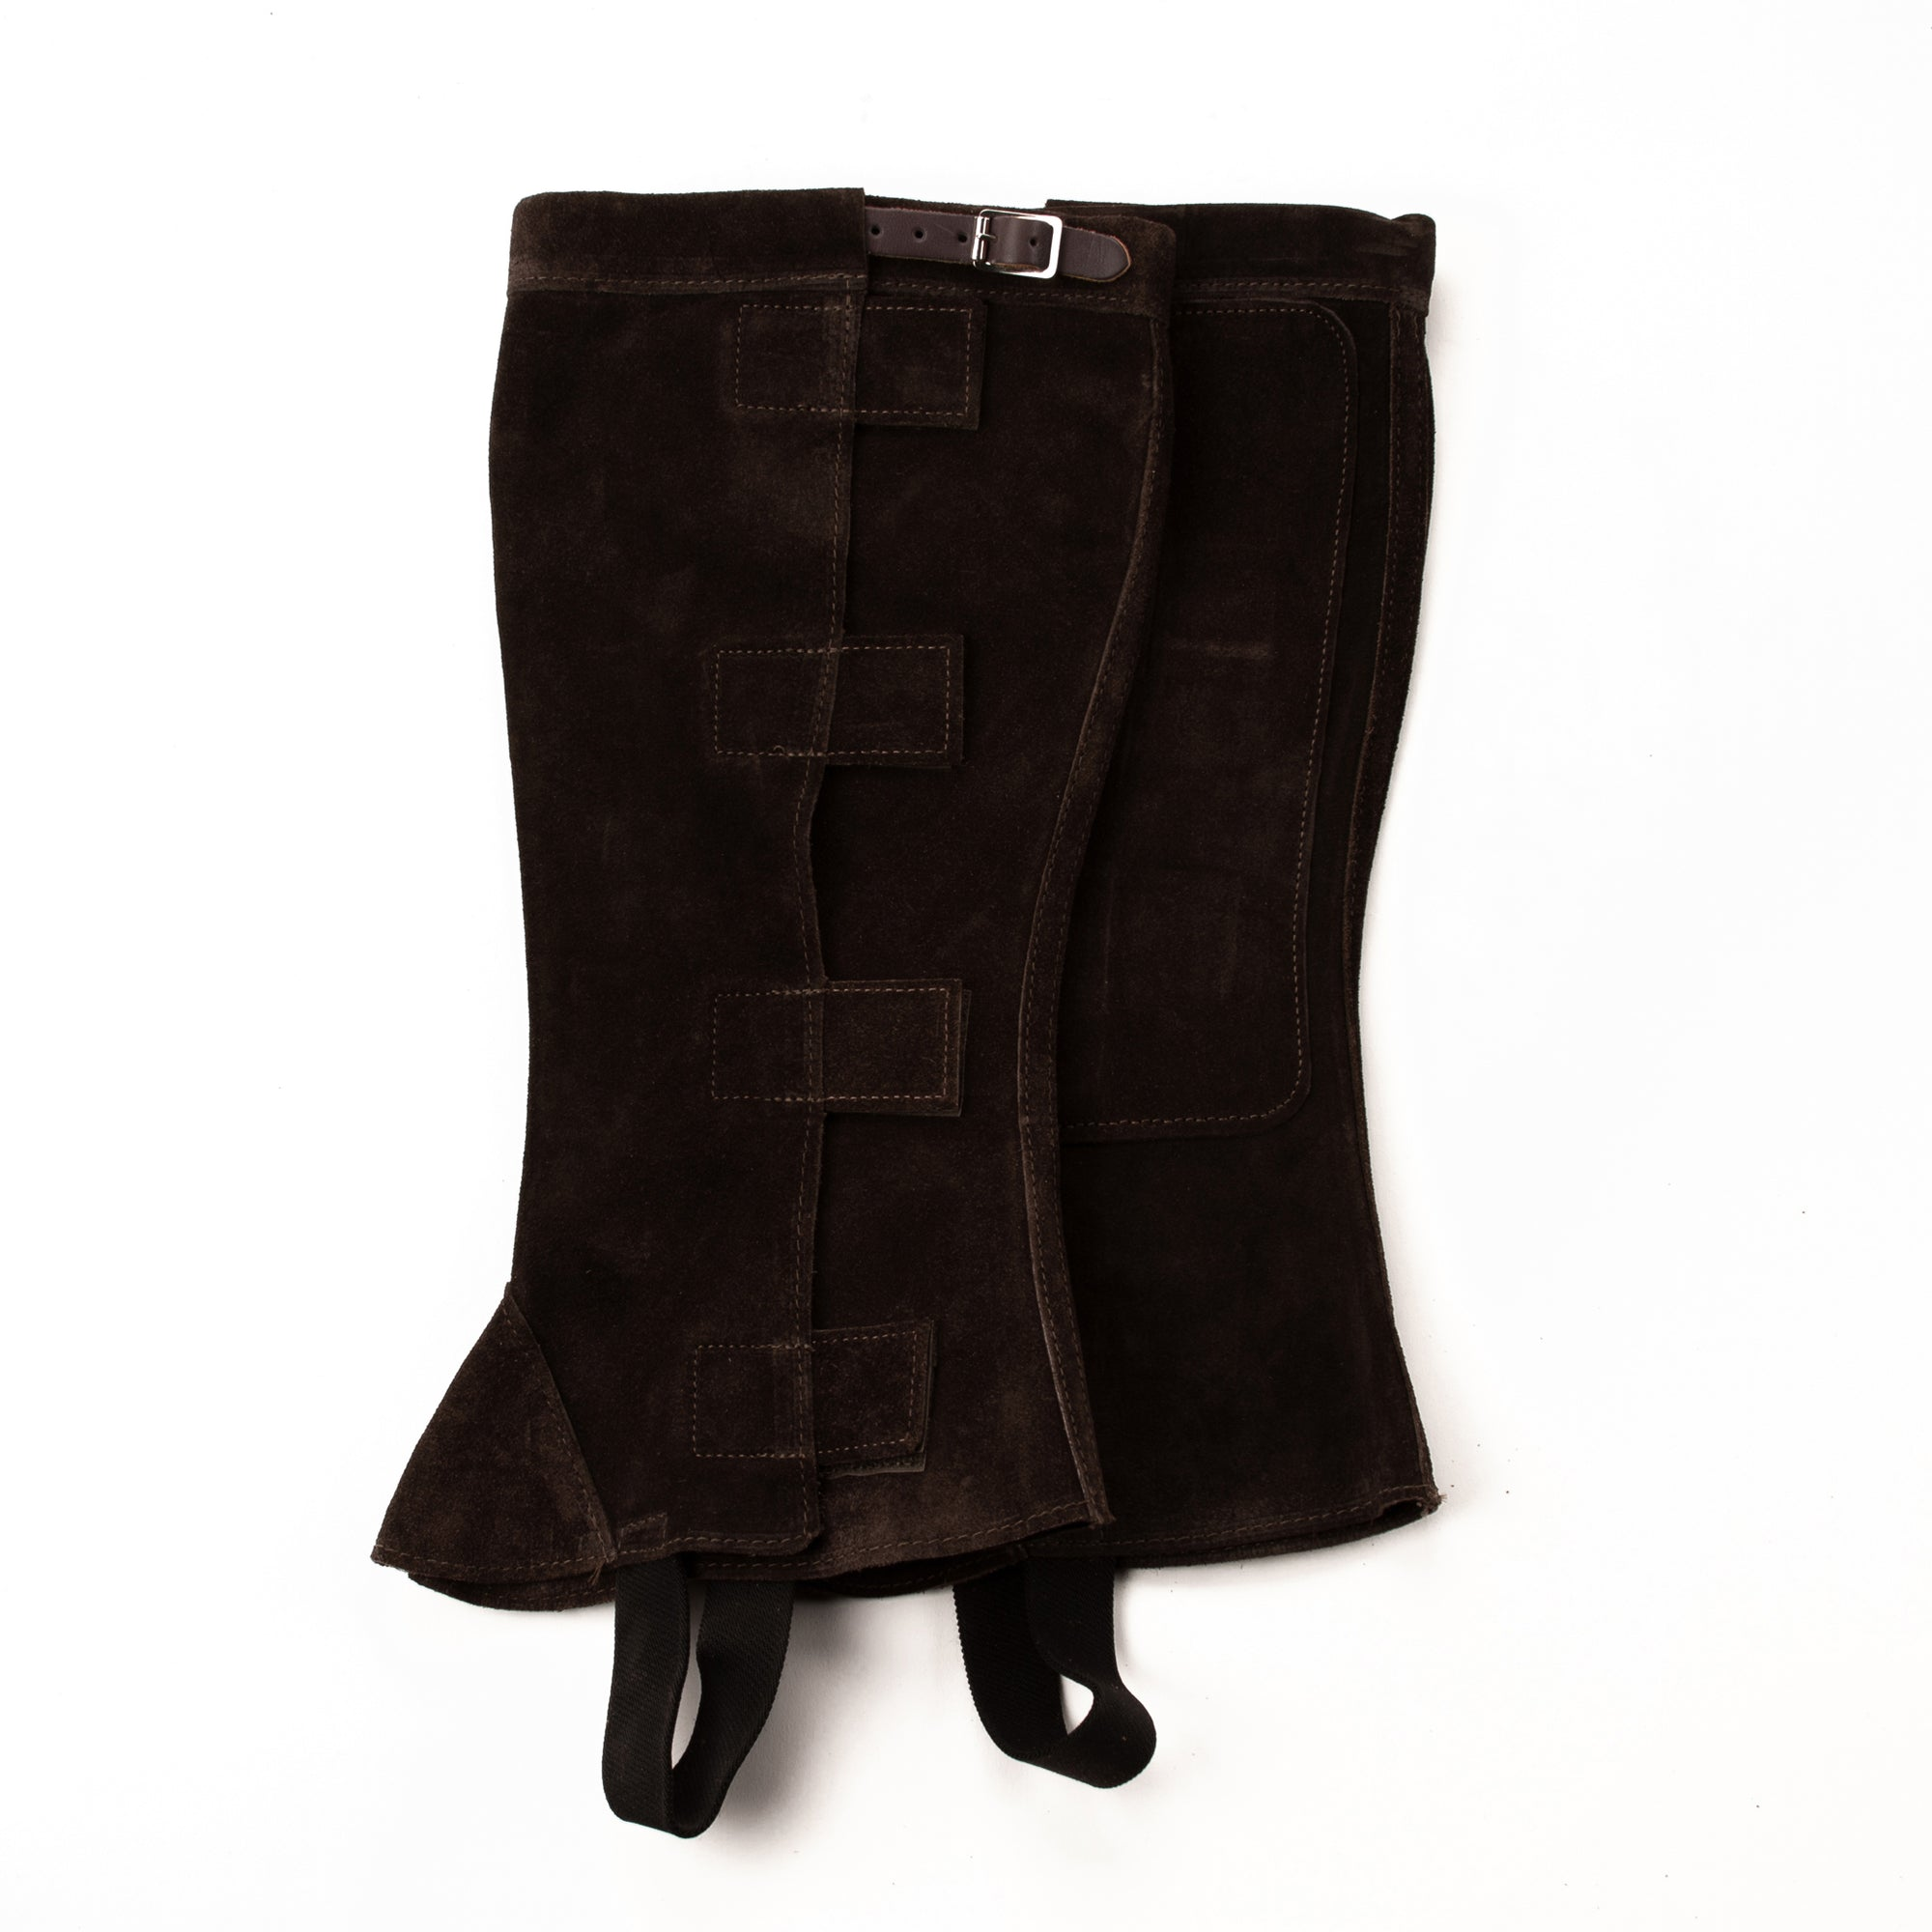 Half Chap - Brown Suede - Velcro & Buckle Closure with Brown Strap